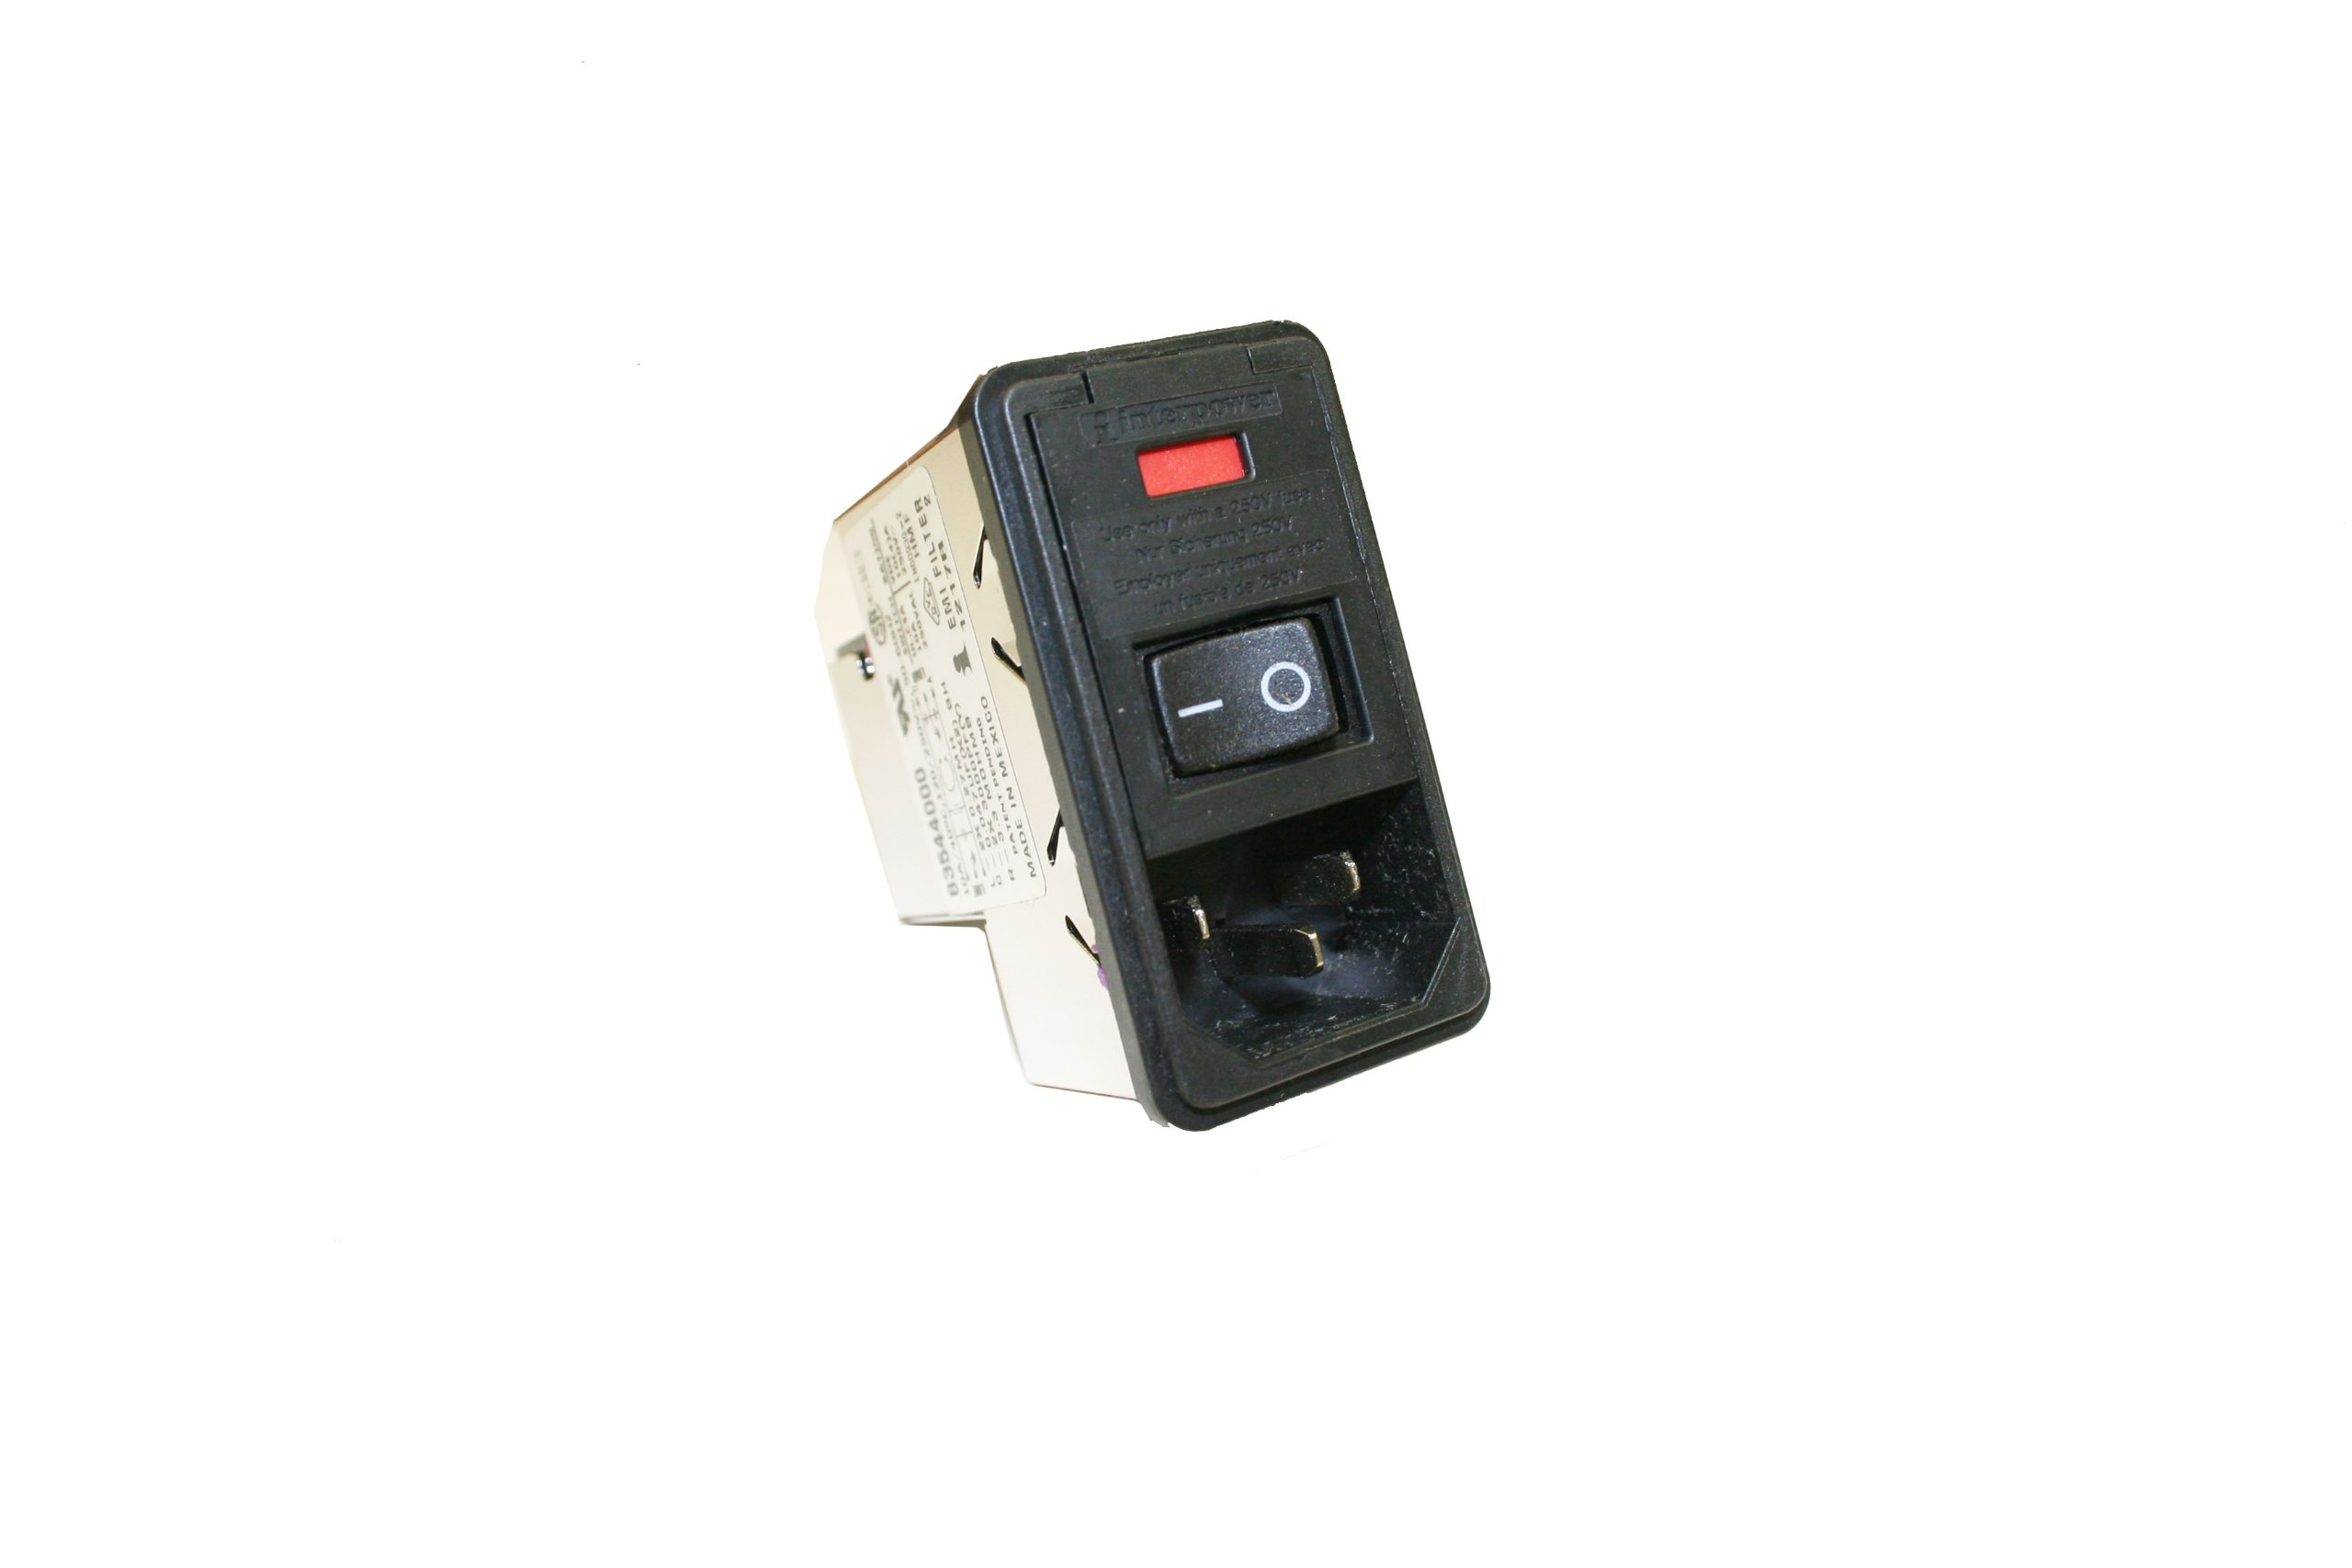 Interpower 83544000 Four Function Filtered Snap-In Module, C14 Inlet, Switch, Single Fused, Filter, 0.08-2mm Panel Thickness, 10A Current Rating, 120/250VAC Voltage Rating by Interpower